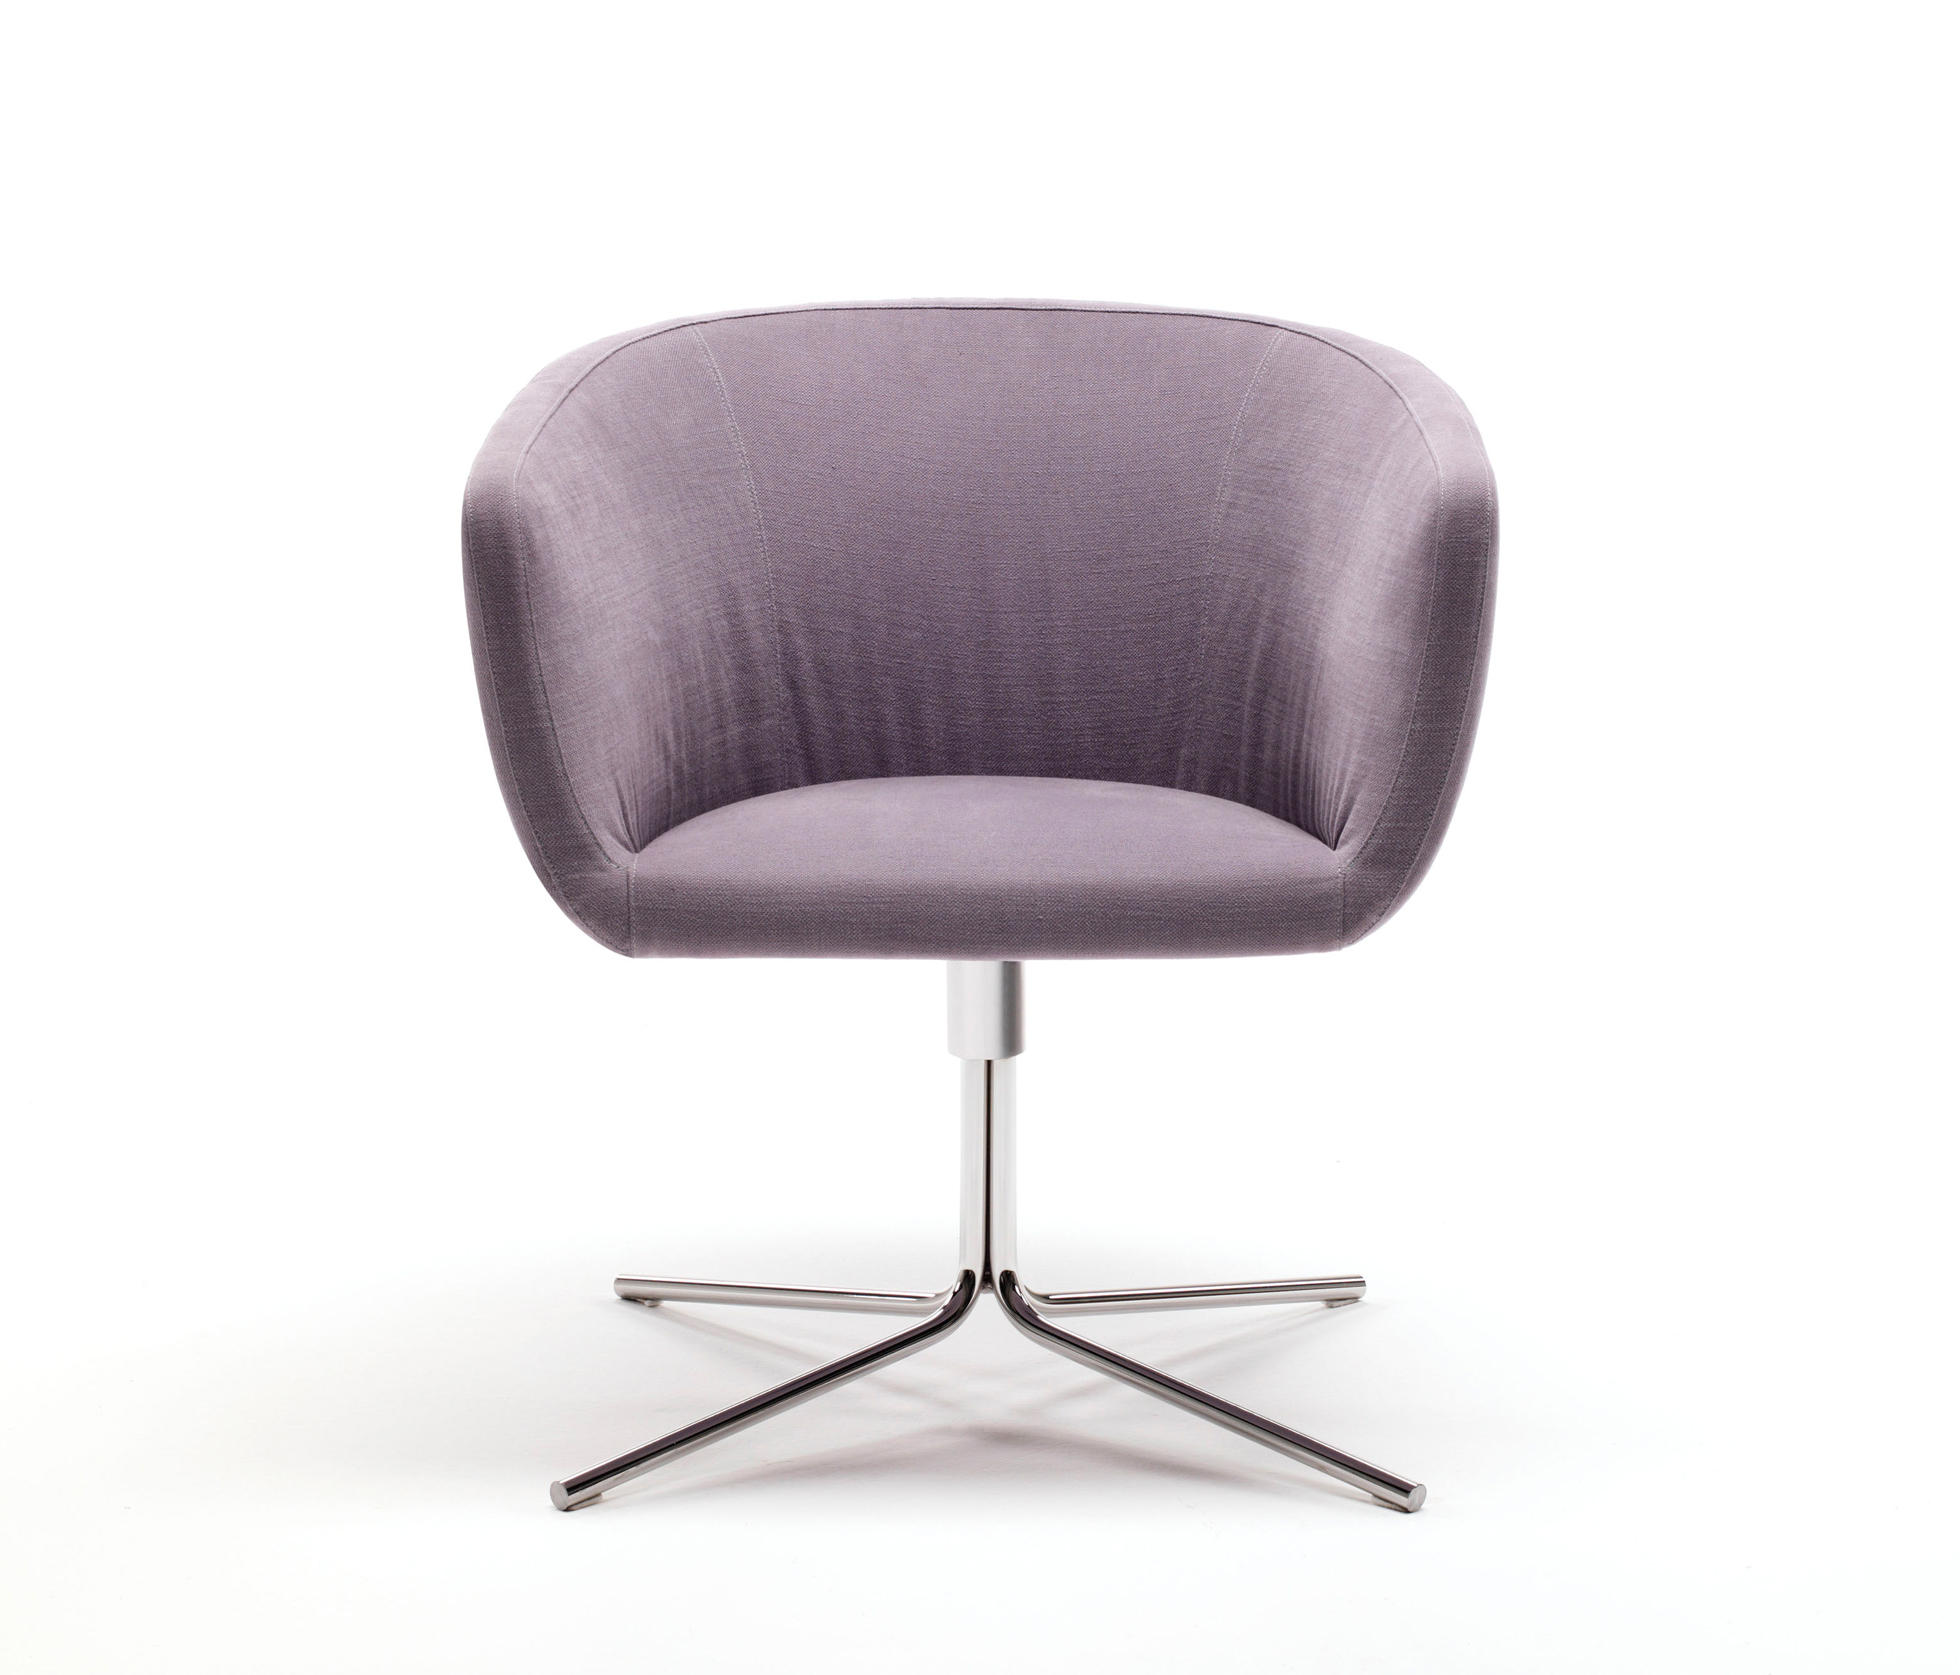 MINI JELLY Lounge chairs from Living Divani